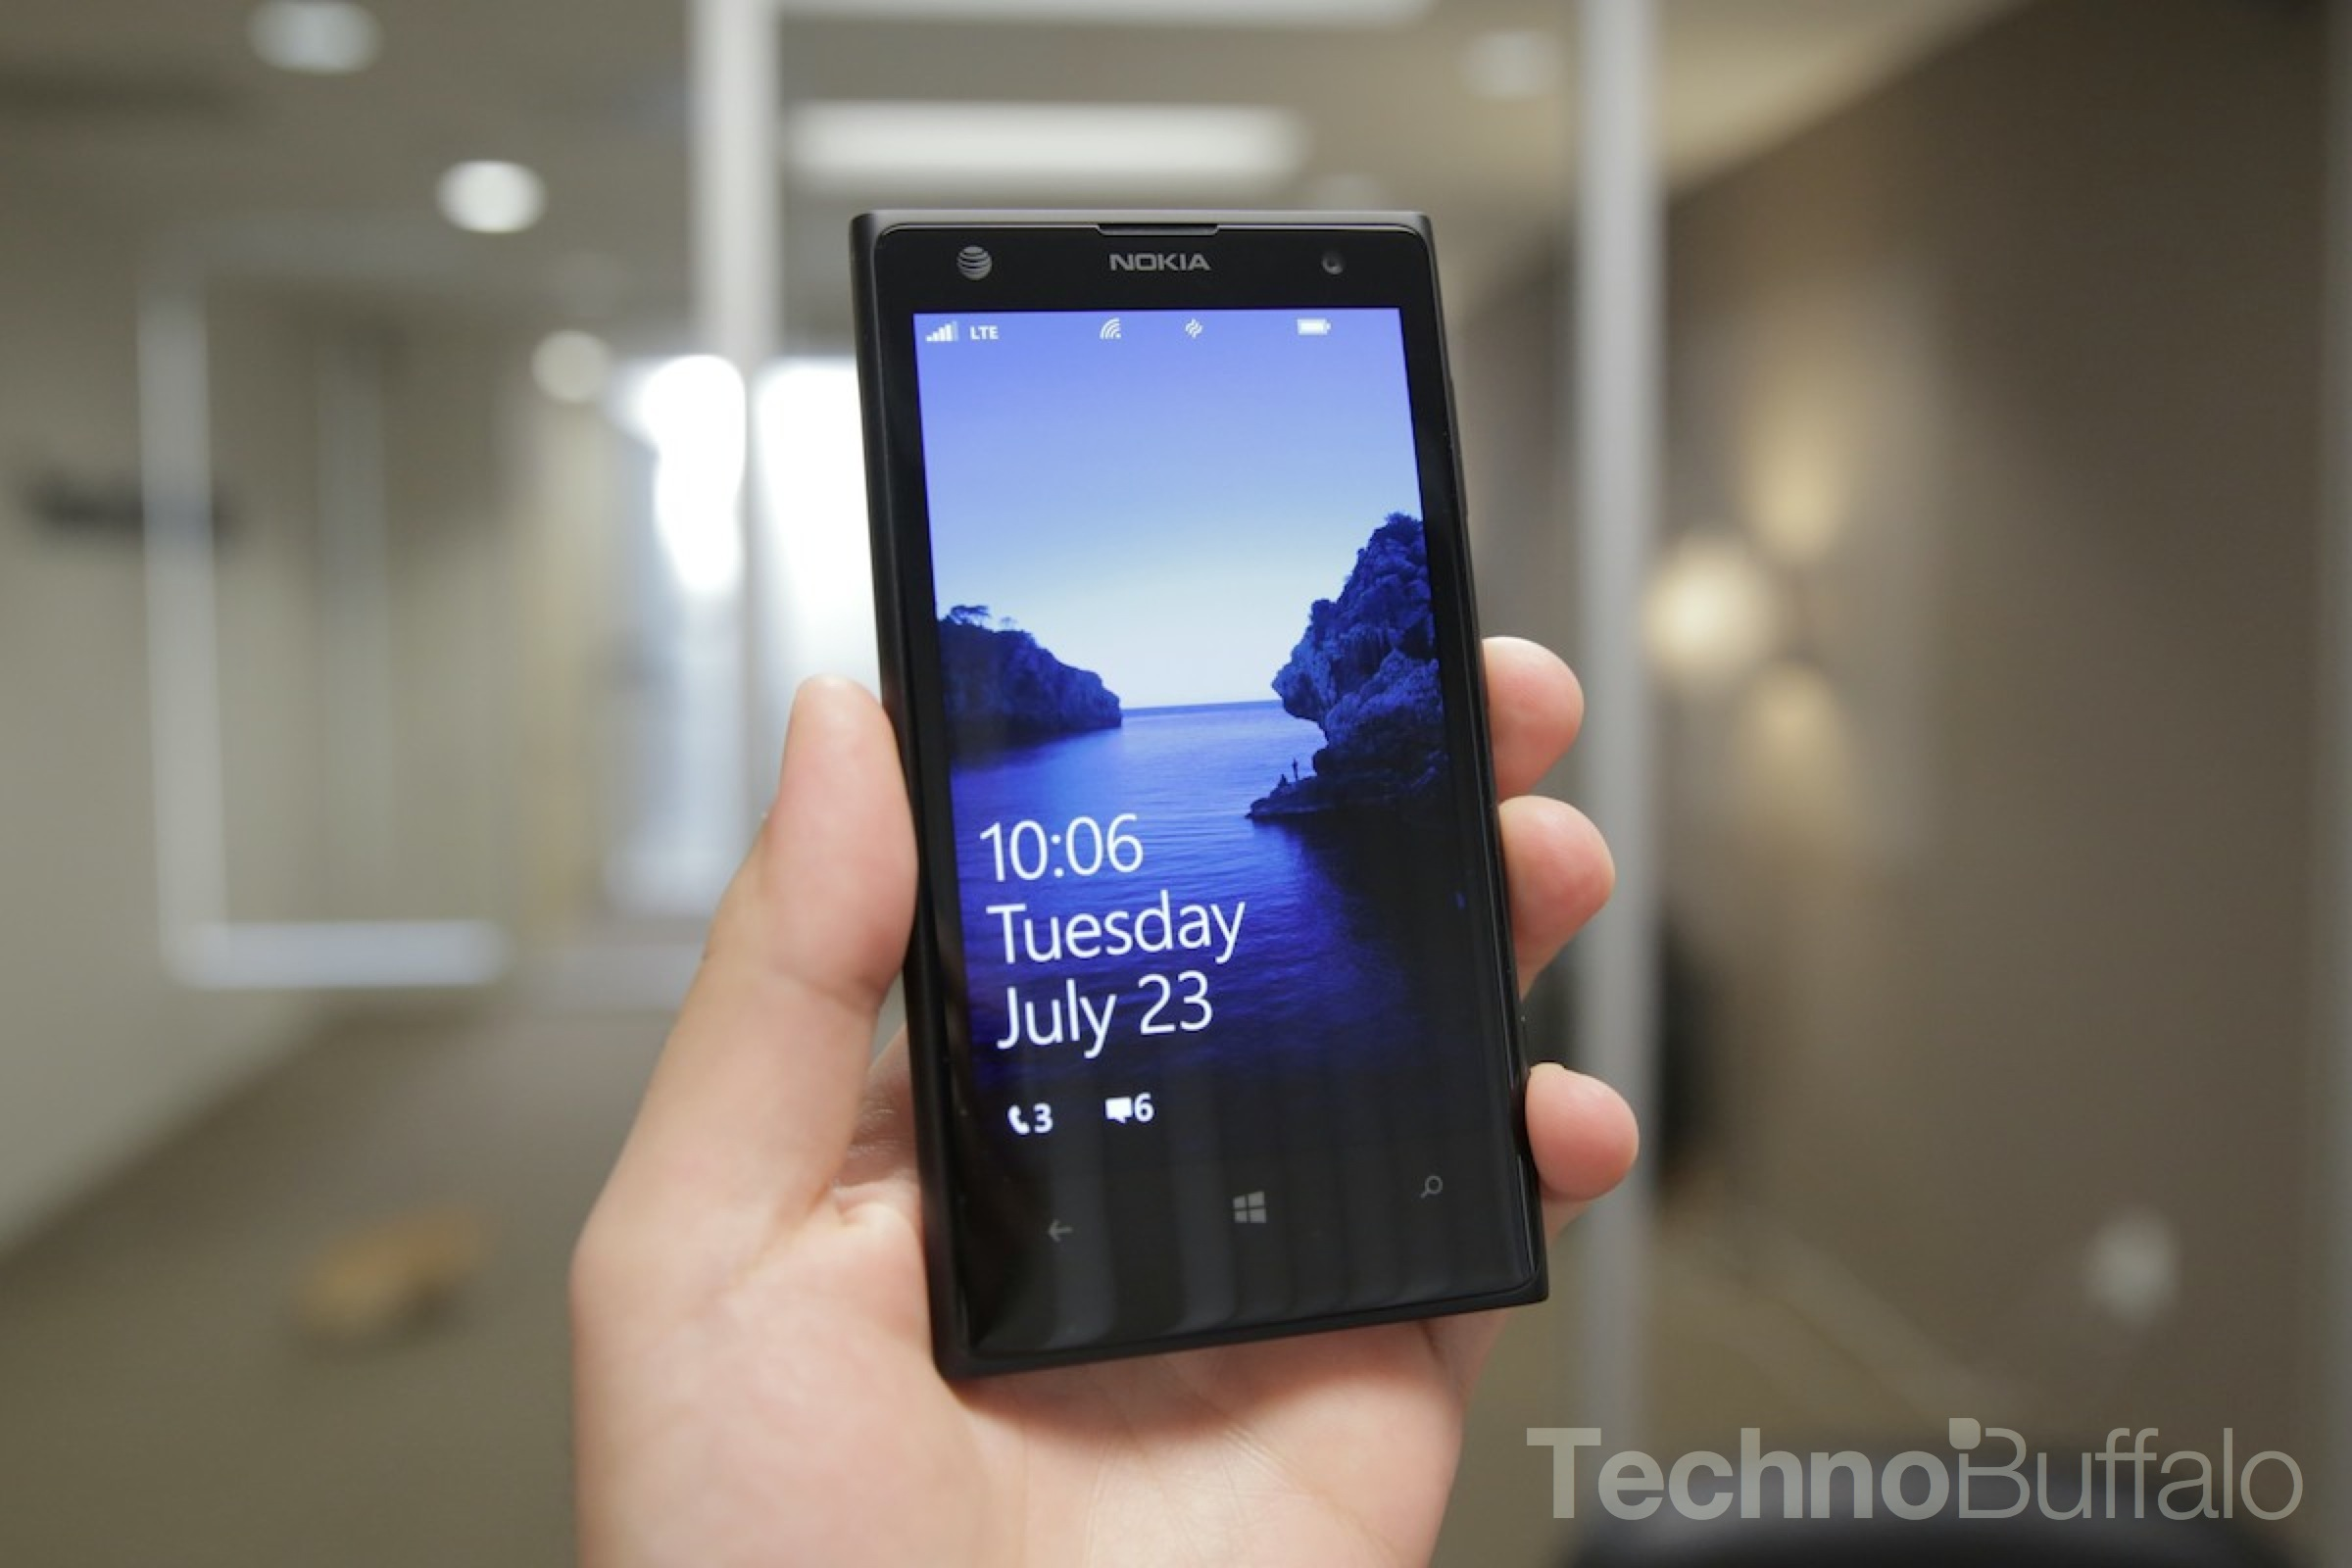 Nokia lumia 1020 review big camera big price big win - Nokia Lumia 1020 Review Big Camera Big Price Big Win